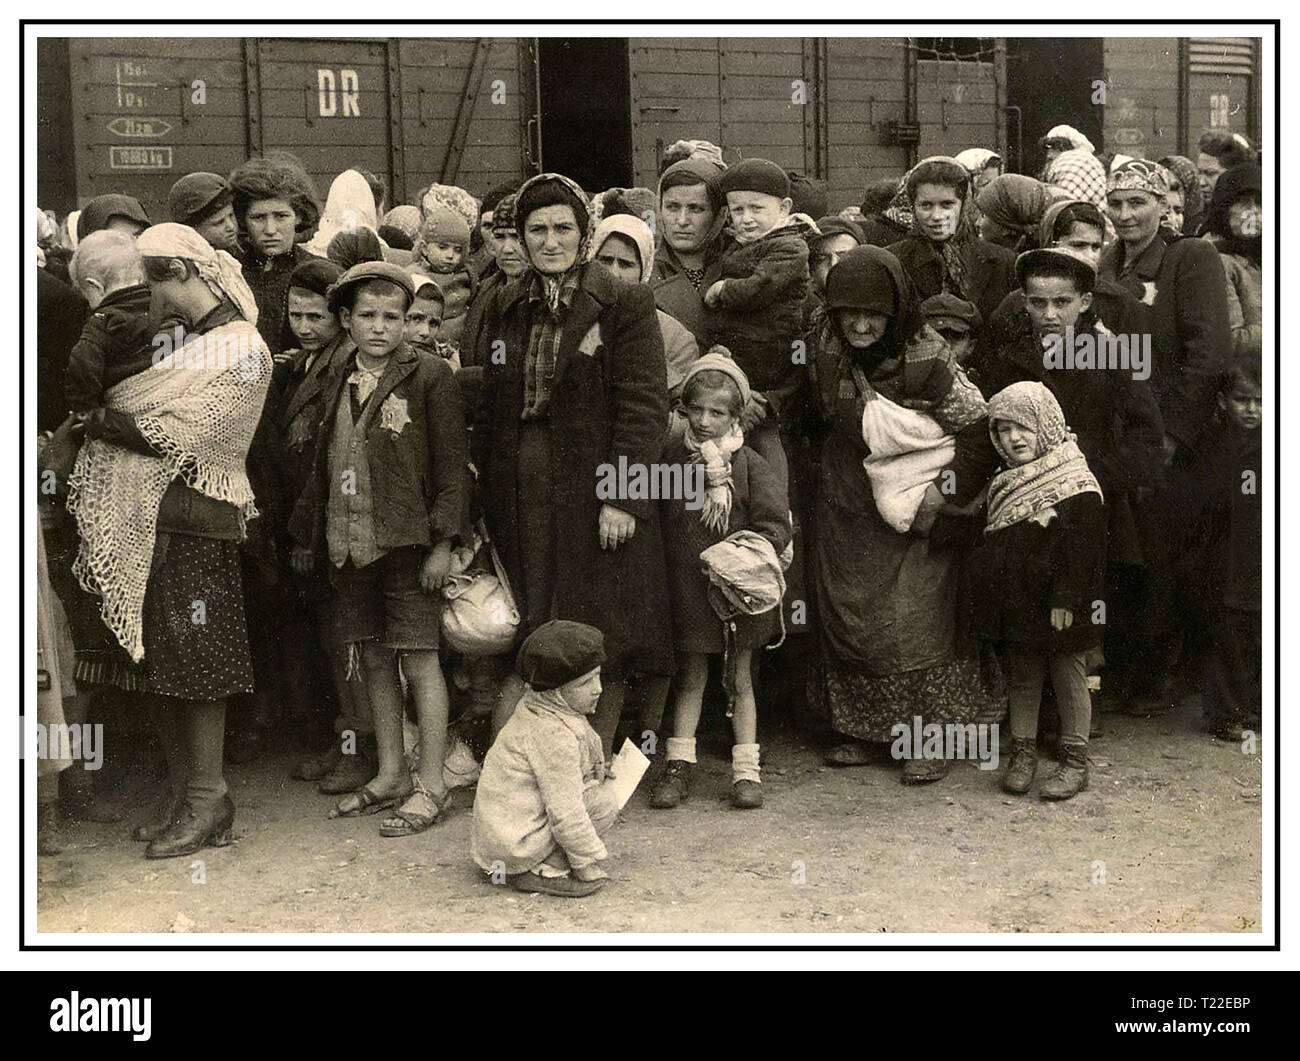 """Auschwitz-Birkenau camp arrivals. Poignant stark image of women & children wearing Nazi designated yellow stars arriving by insanitary cattle trucks in Auschwitz-Birkenau, a WW2 German Nazi Concentration & Extermination camp. Jewish children were the largest group of those deported to the camp along with adults, beginning 1942, as part of  """"final solution of the Jewish question""""—the total destruction of Jewish population of Europe. Auschwitz concentration camp was in a network of  Nazi extermination camps operated by the Third Reich in Polish areas annexed by Nazi Germany during World War II. - Stock Image"""